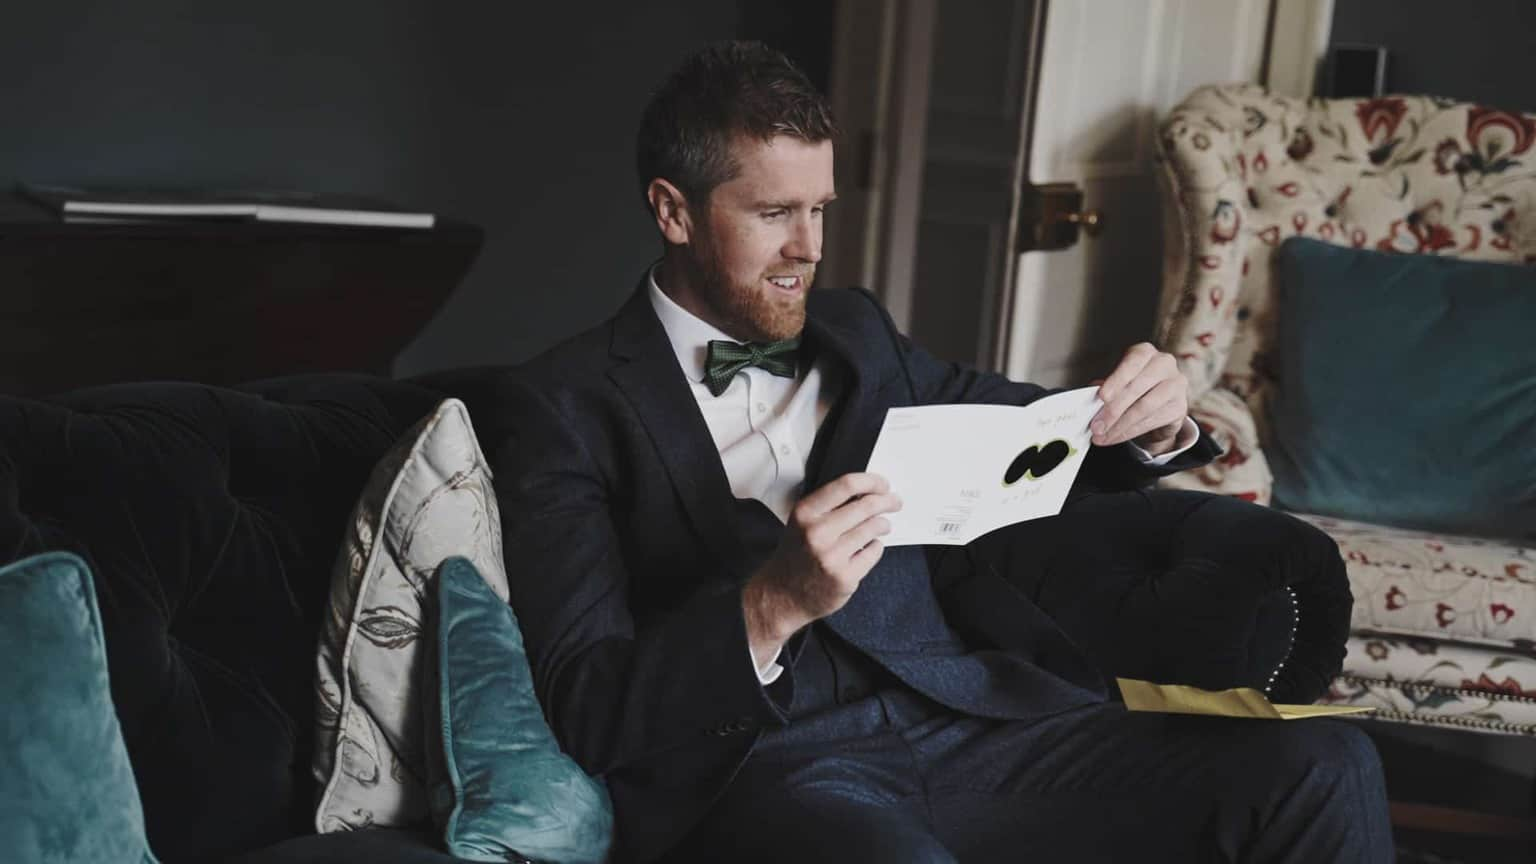 Groom is reading letter from bride